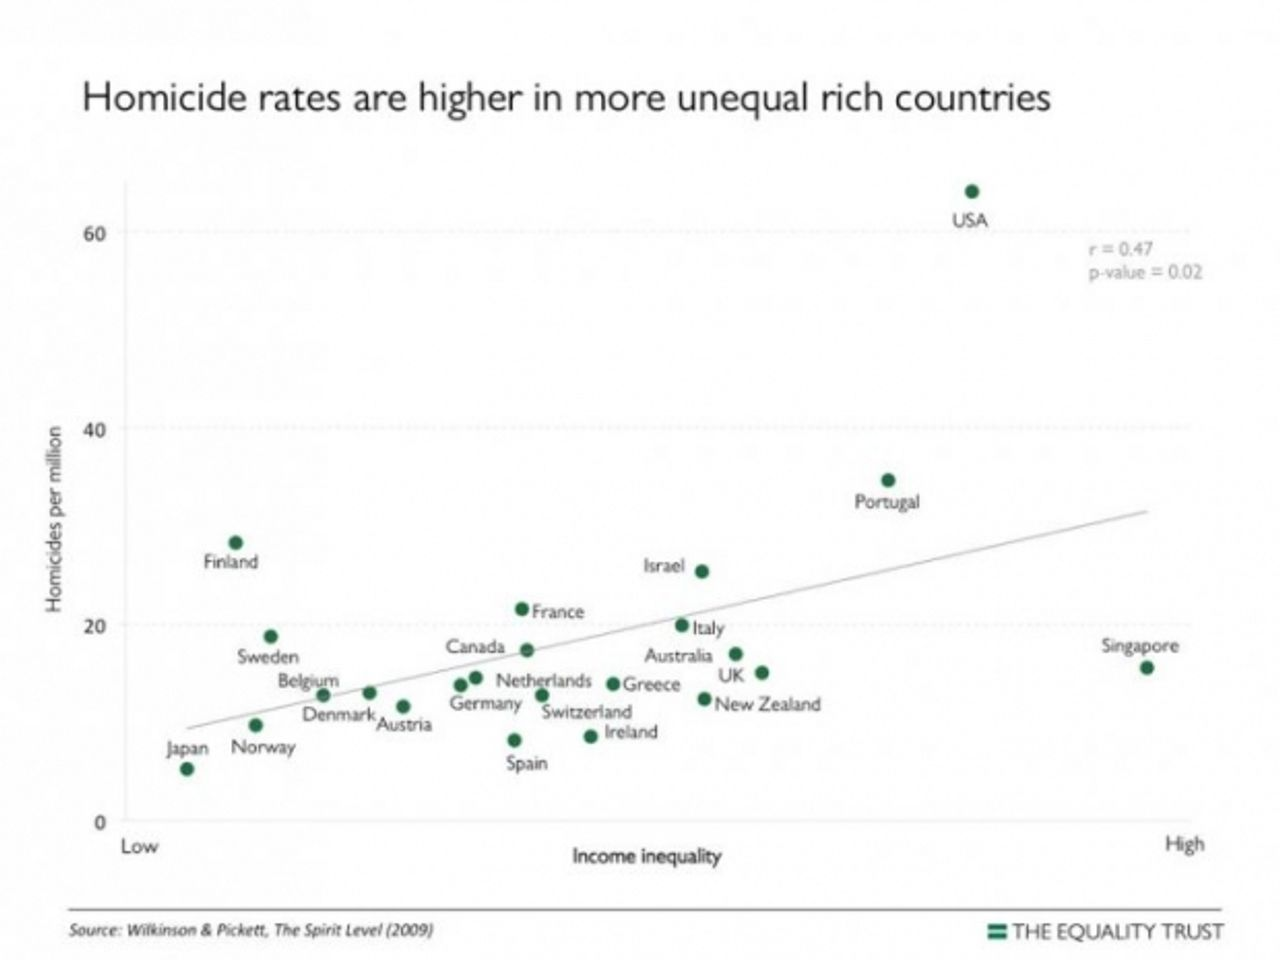 Wilkinson and Pickett demonstrate in The Spirit Level that countries with higher levels of inequality exhibit higher levels of violence